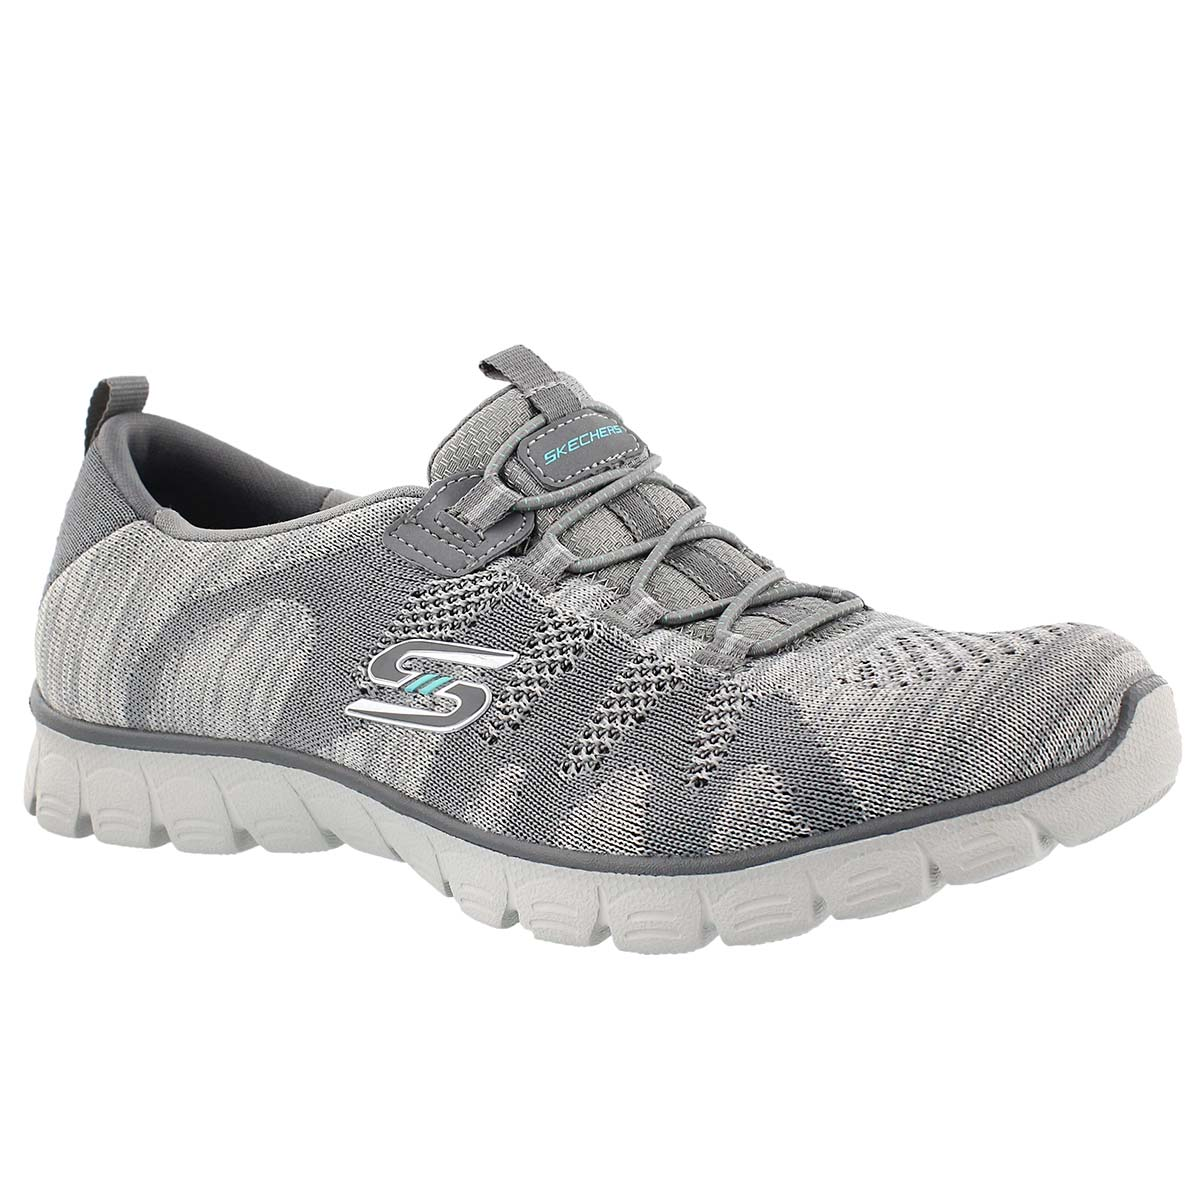 Lds Take-The-Lead grey sneaker